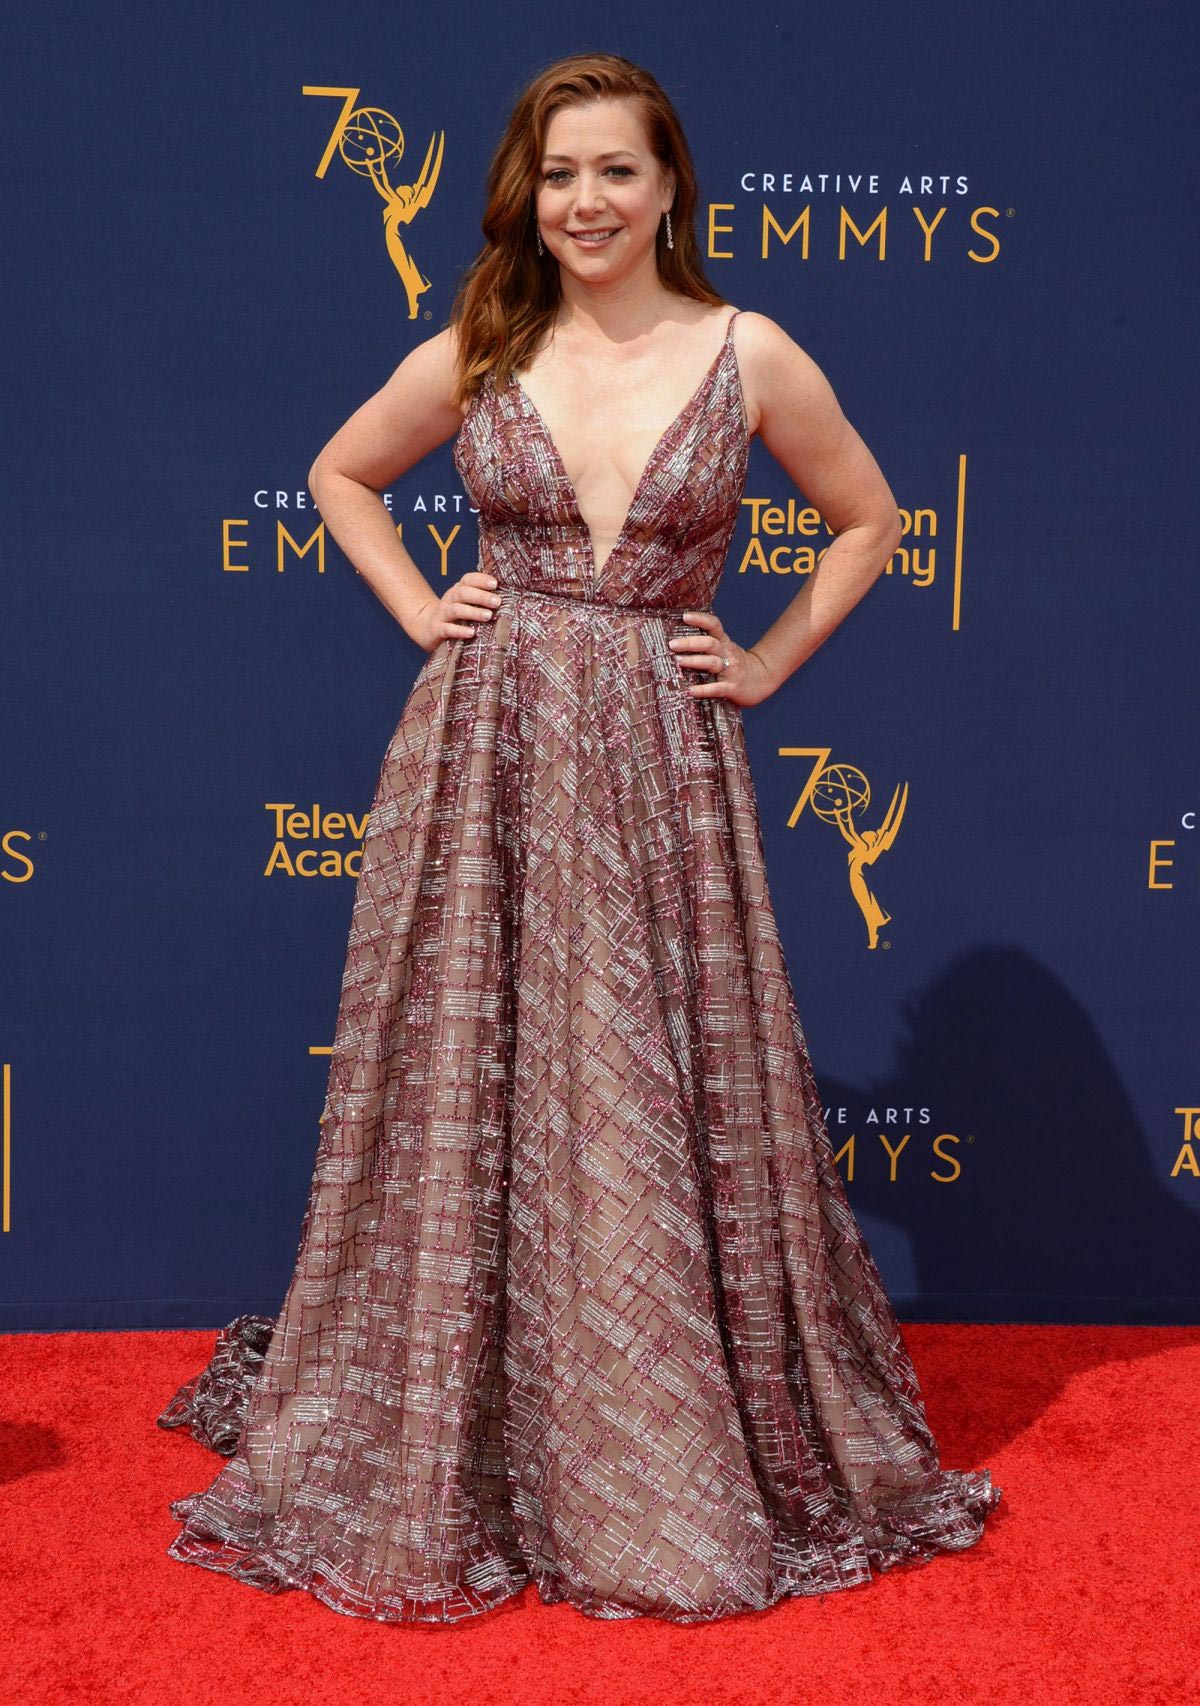 Alyson Hannigan at 2018 Creative Arts Emmy Awards in Los Angeles 2018/09/08 1